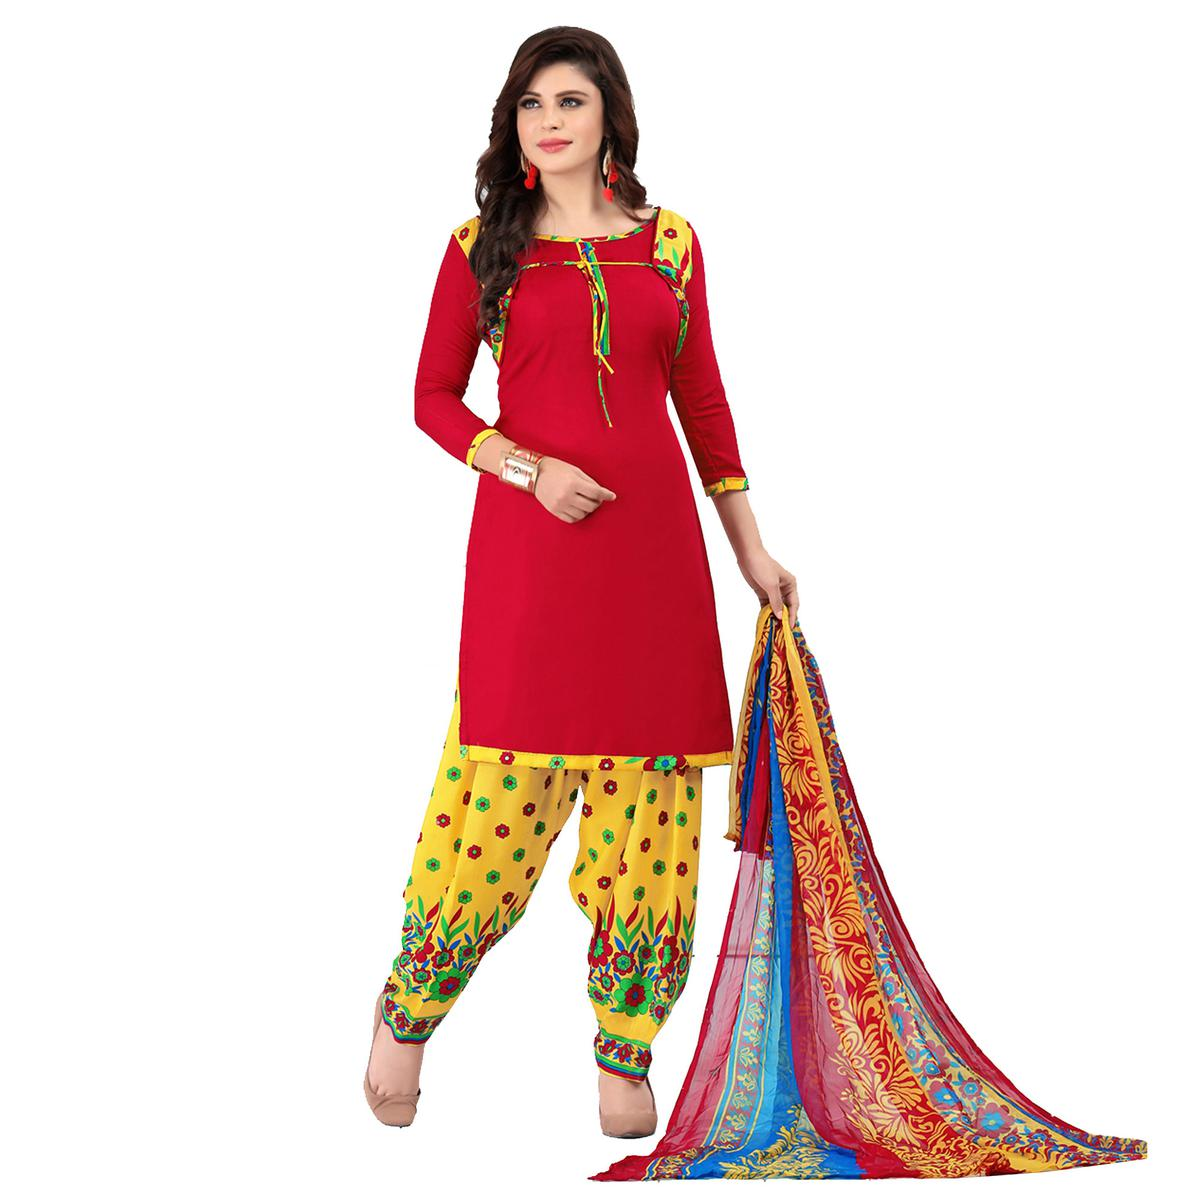 Sizzling Red Cotton Printed Casual Dress Material